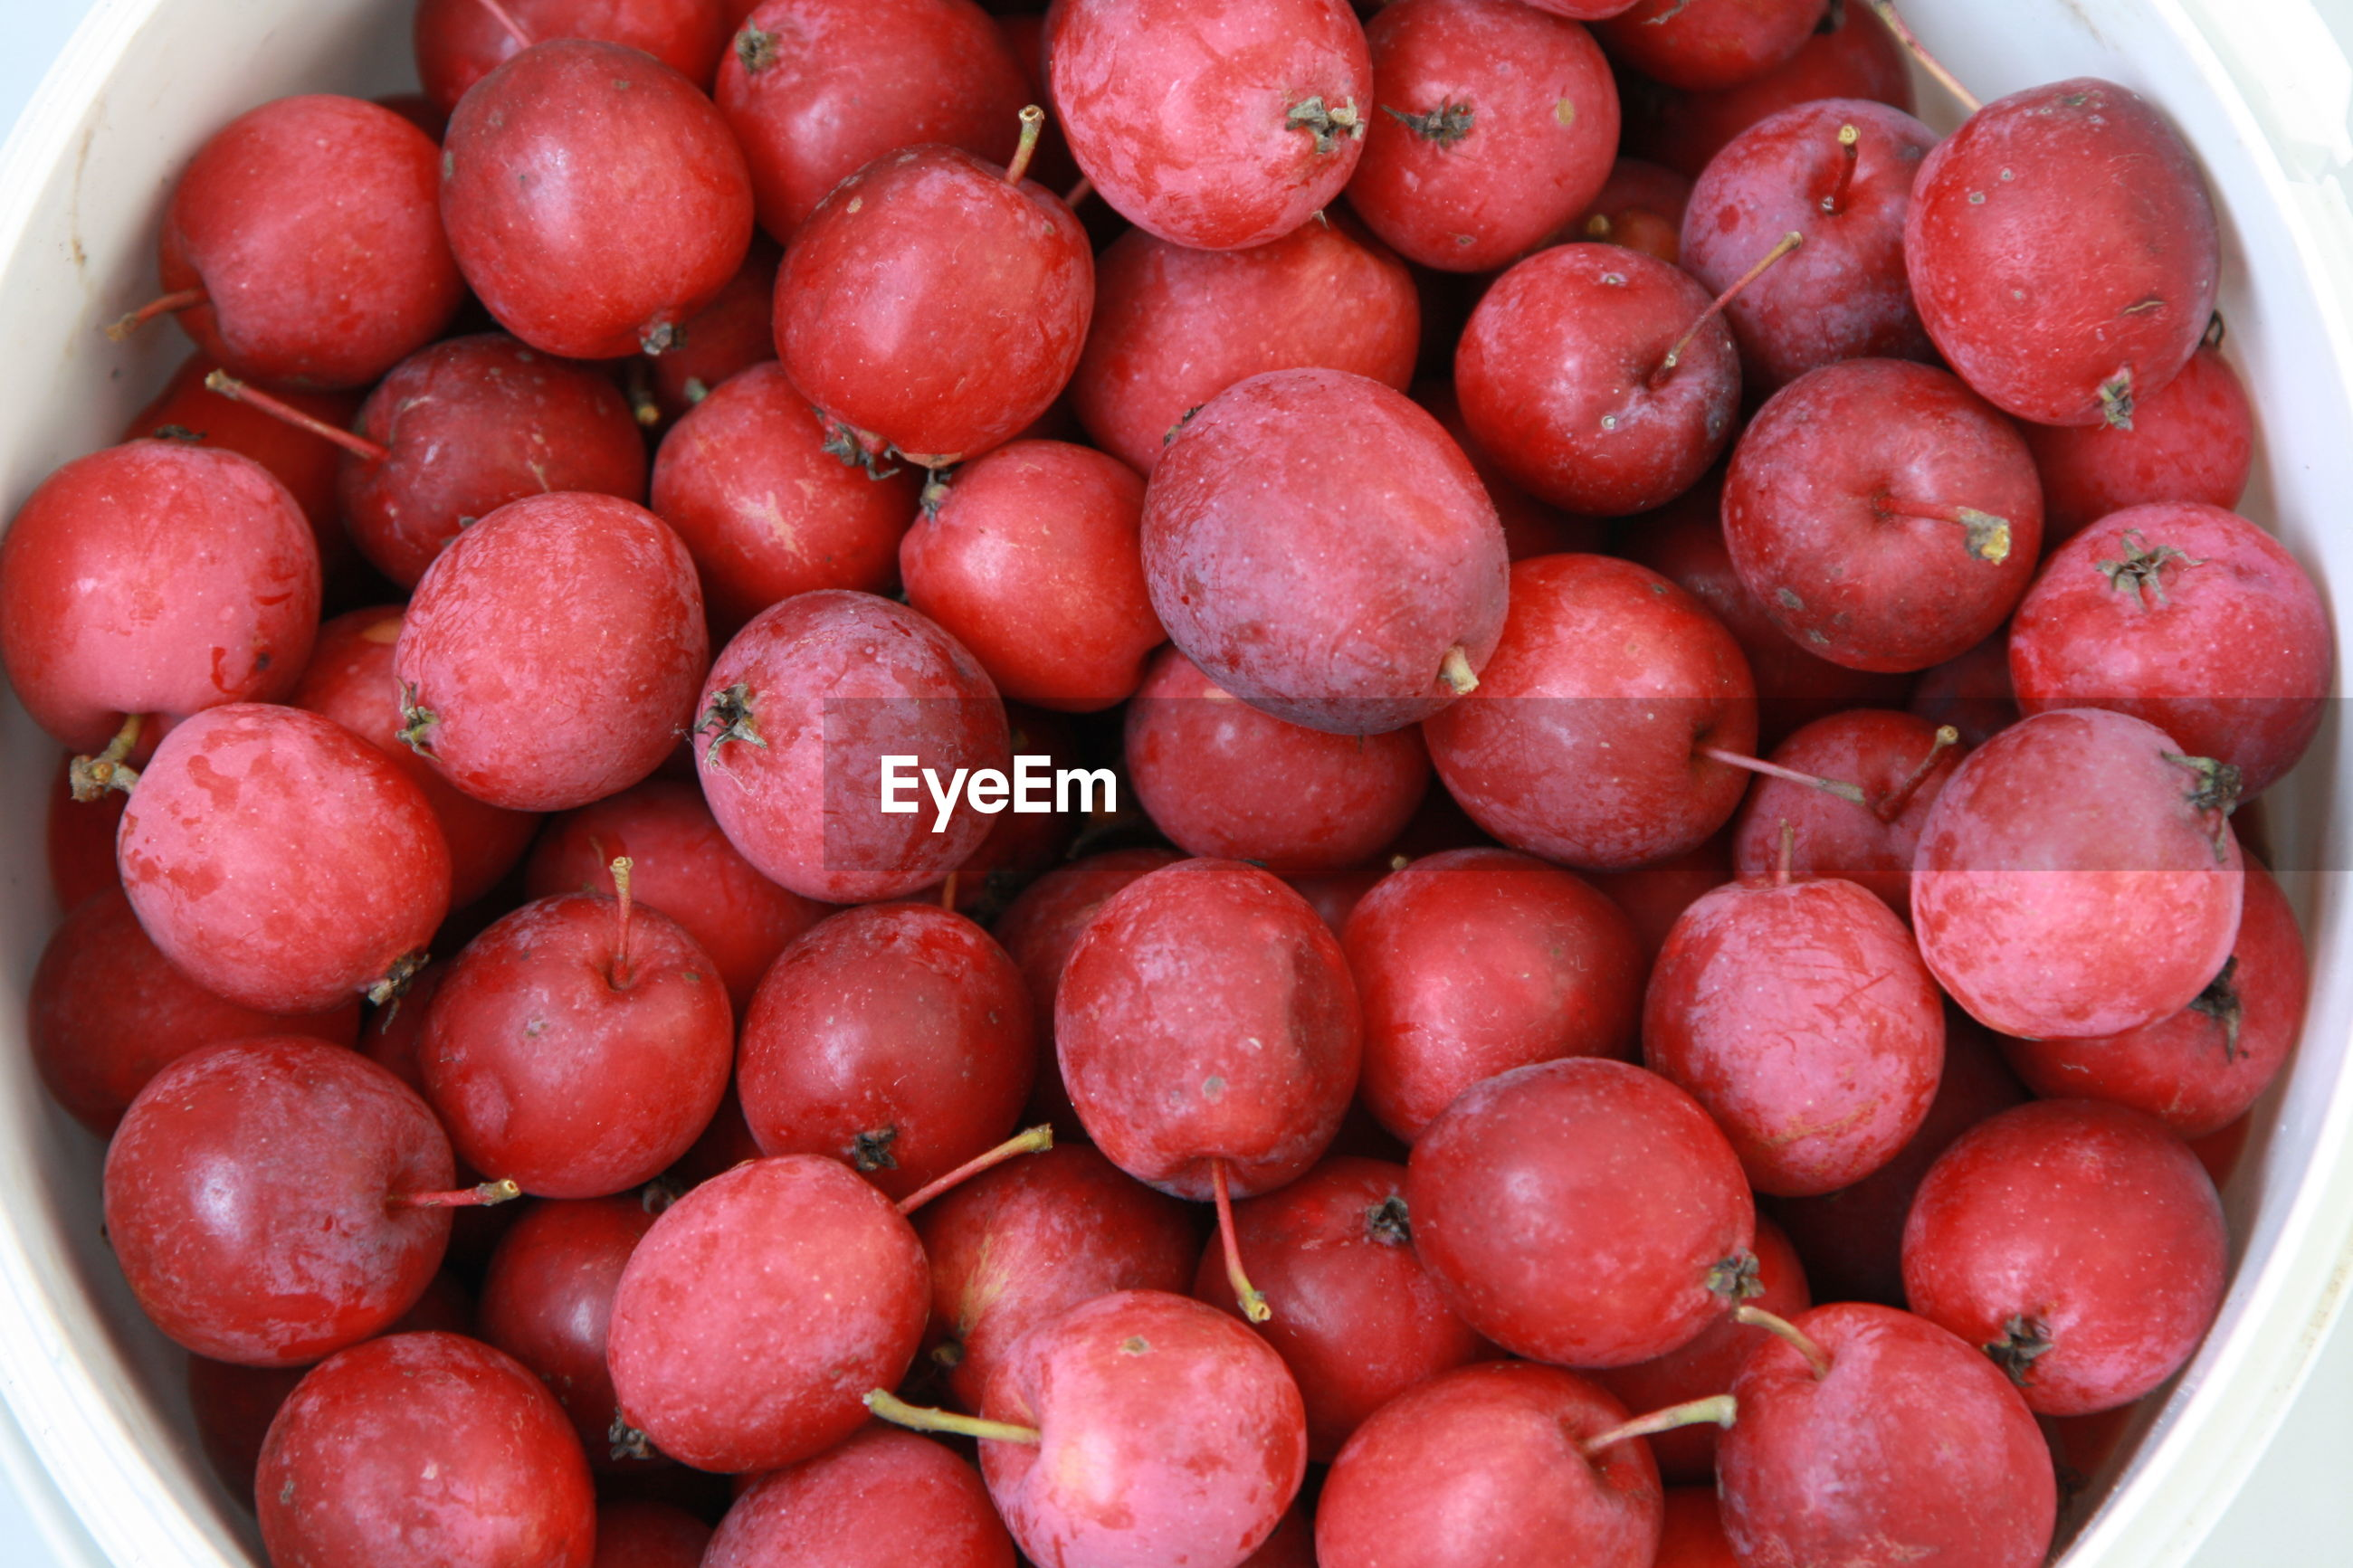 HIGH ANGLE VIEW OF FRUITS IN BOWL